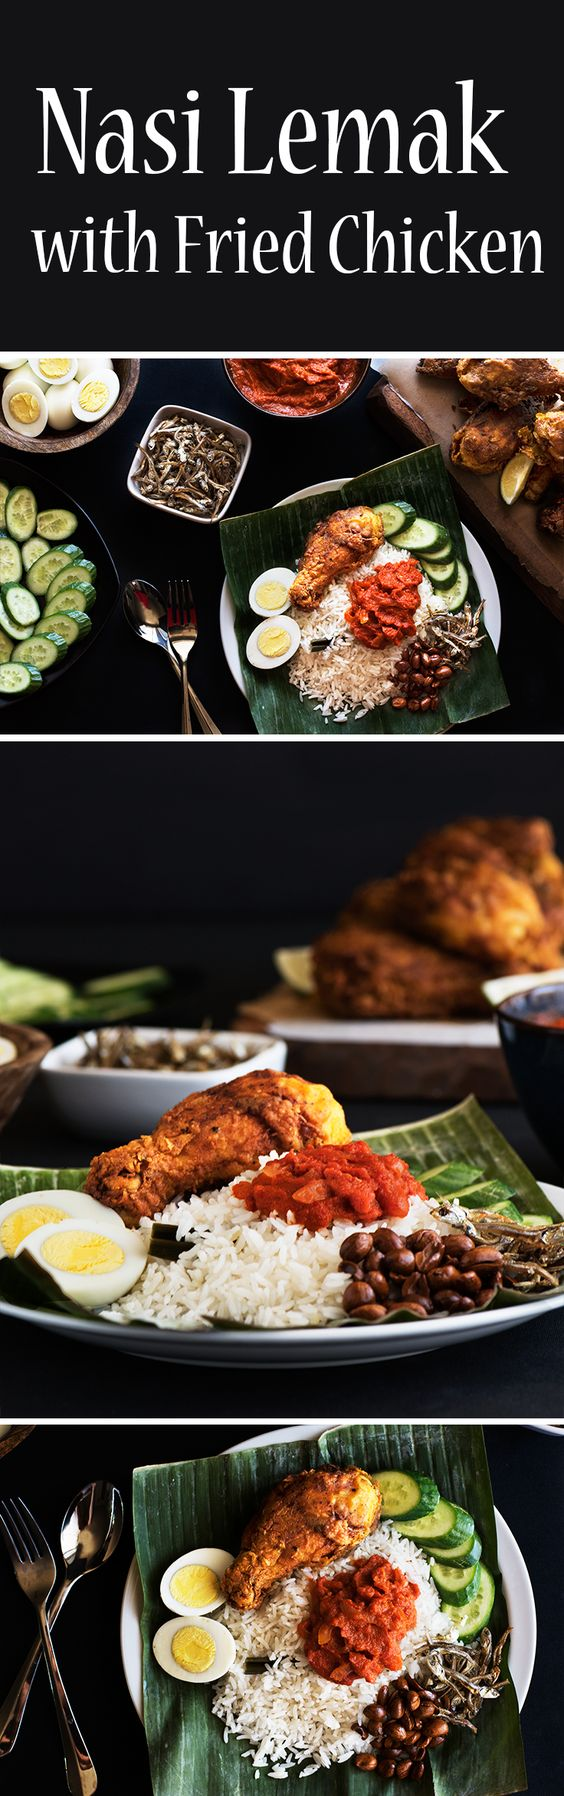 ... rice peanuts spicy spicy sauce sauces eggs rice chicken fried chicken